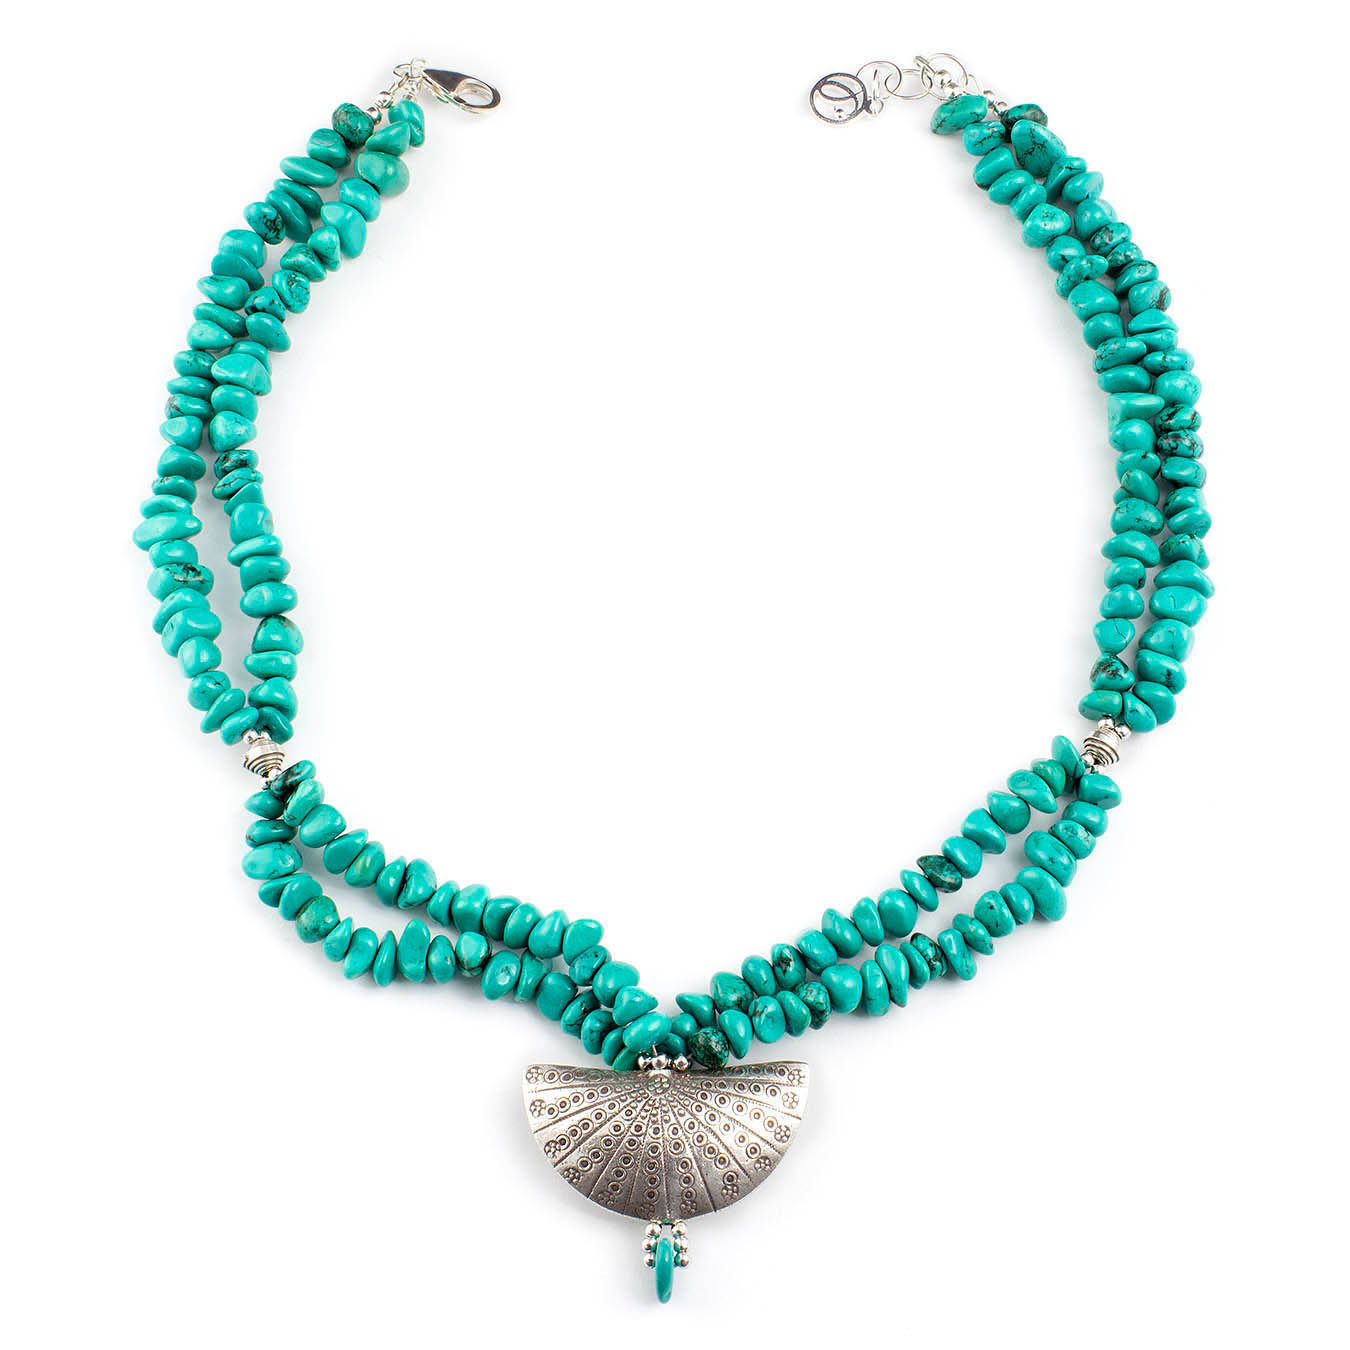 Double strand birthstone necklace made of turquoise and Thai silver